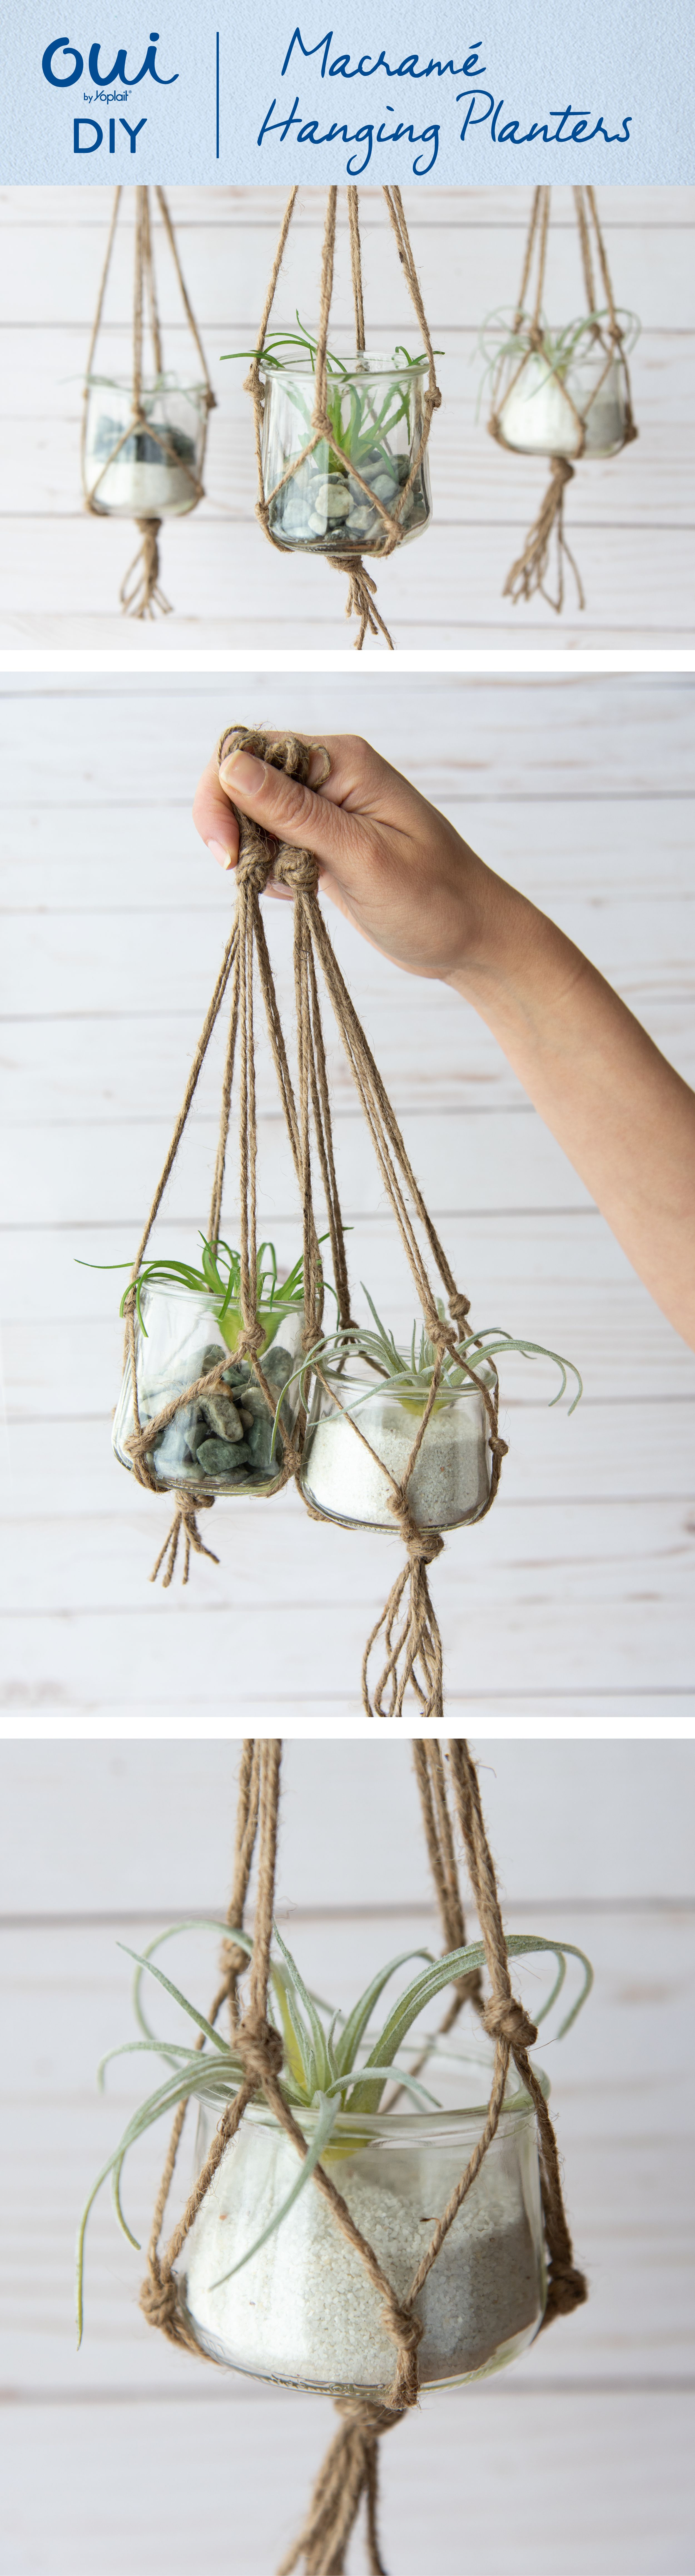 Macrame Hanging Planters are our favorite DIY for Oui glass pots! Cut four pieces of twine to the same length, loop in half and tie a knot to create a handle. Split twine into four sections of two strings, tie knots between each section 3 from the handle. Repeat, tying knots to adjacent strings. End in one final knot. Prep air plant as desired and place inside macrame holder. Enjoy! #diyyarnholder